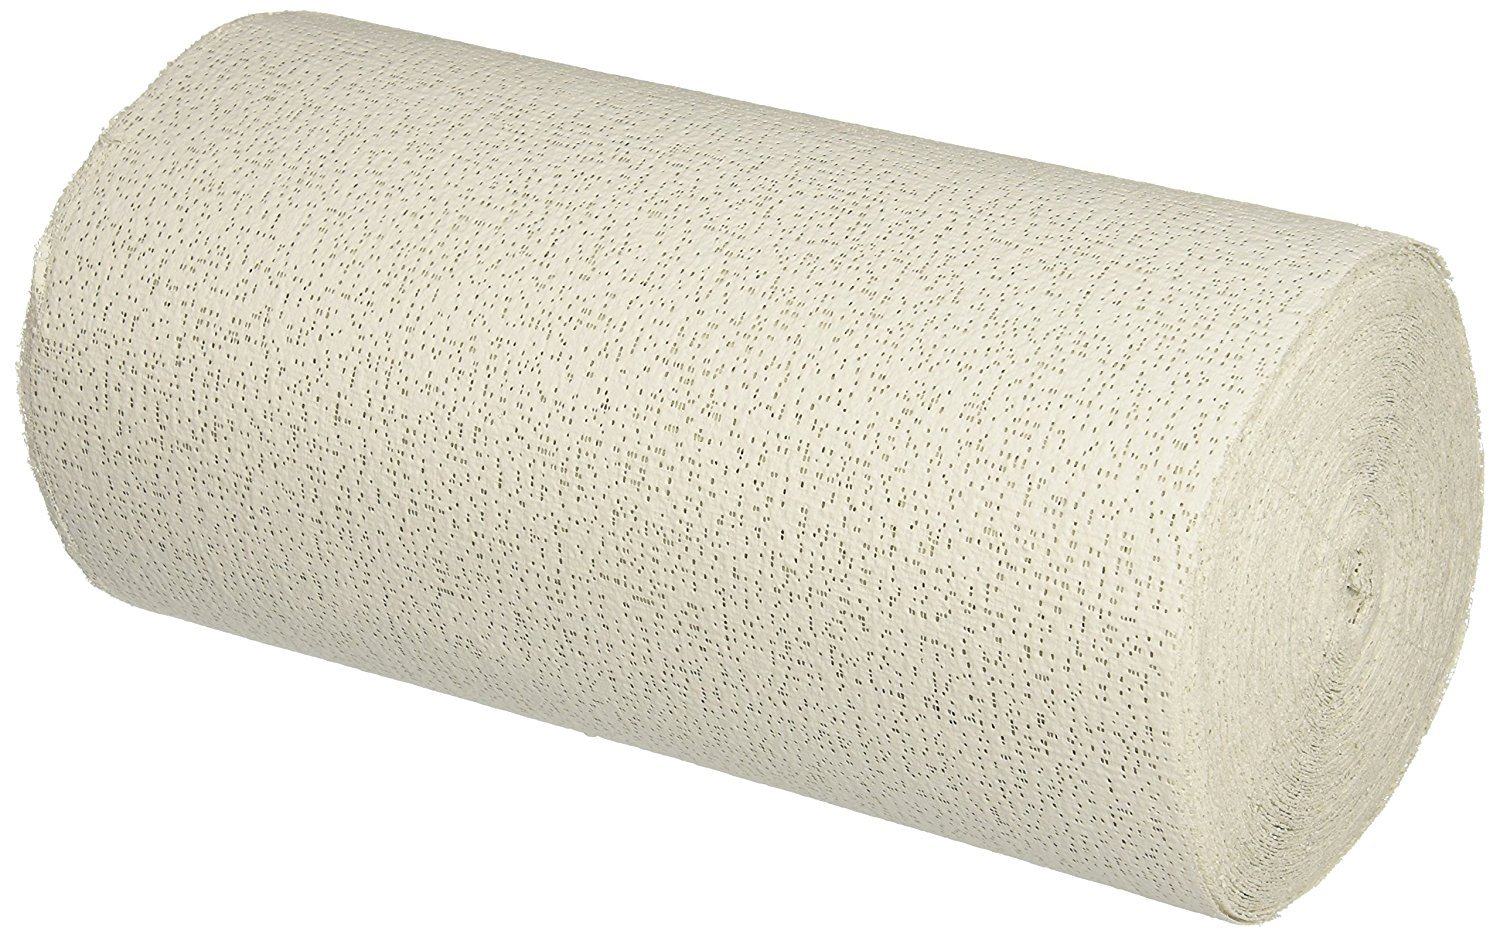 Activa. Rigid Wrap Plaster Cloth, 5 pounds (Limited Edition)